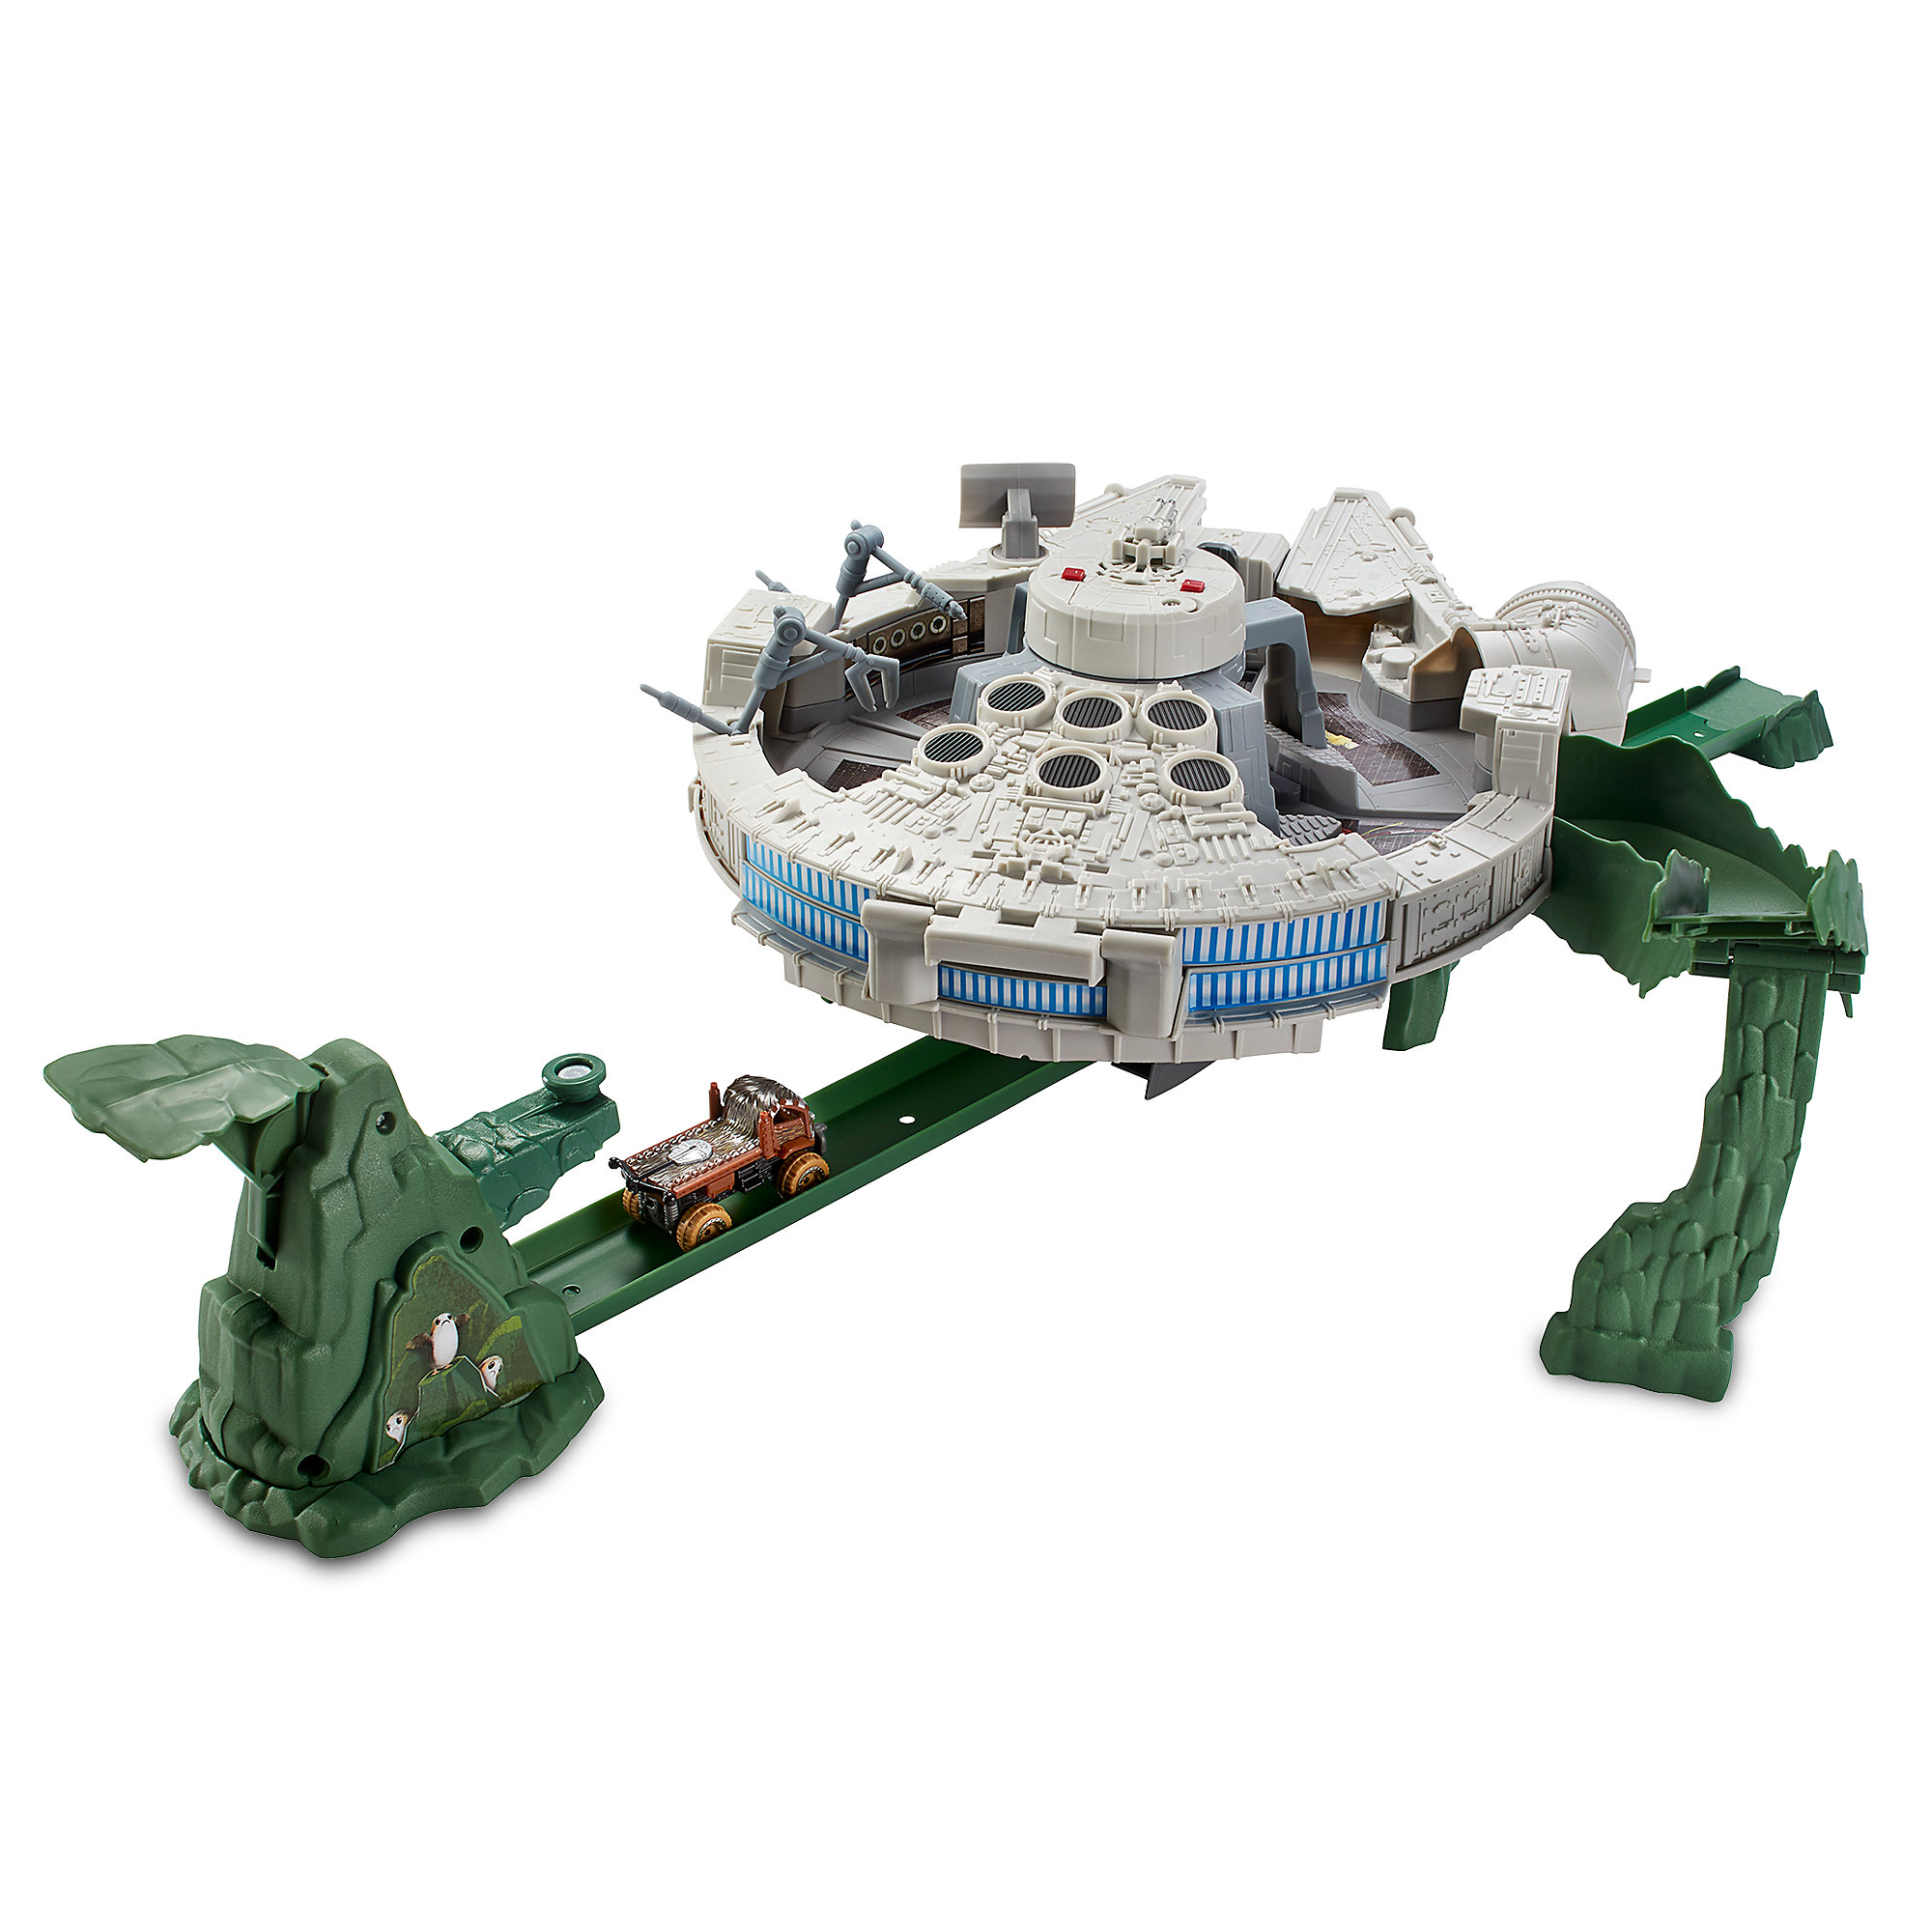 Millennium Falcon Track Set - Star Wars: The Last Jedi - Hot Wheels